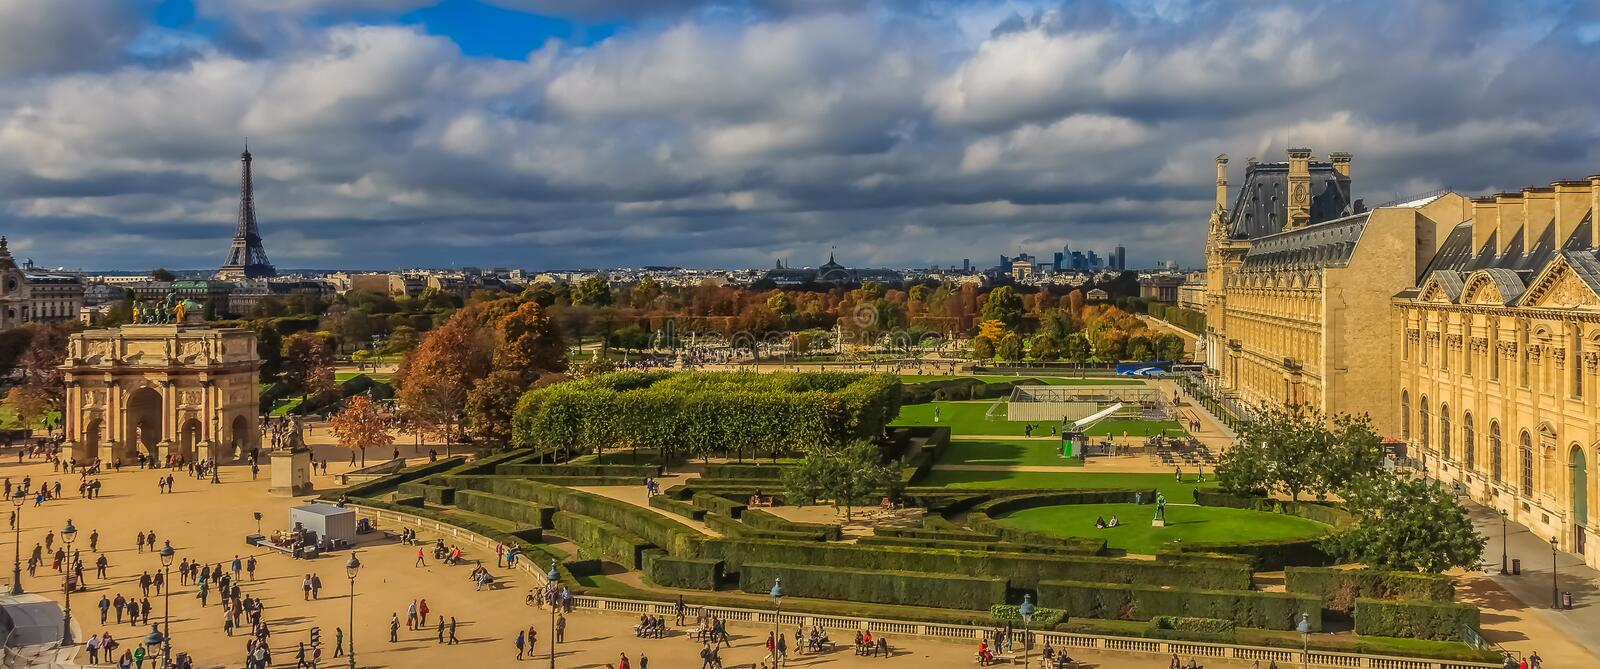 Panorama of Paris cityscape with the Tuileries Garden, the Arc du Carrousel and the Eiffel Tower in front of the Louvre Museum in. Paris, France - October 25 royalty free stock photos